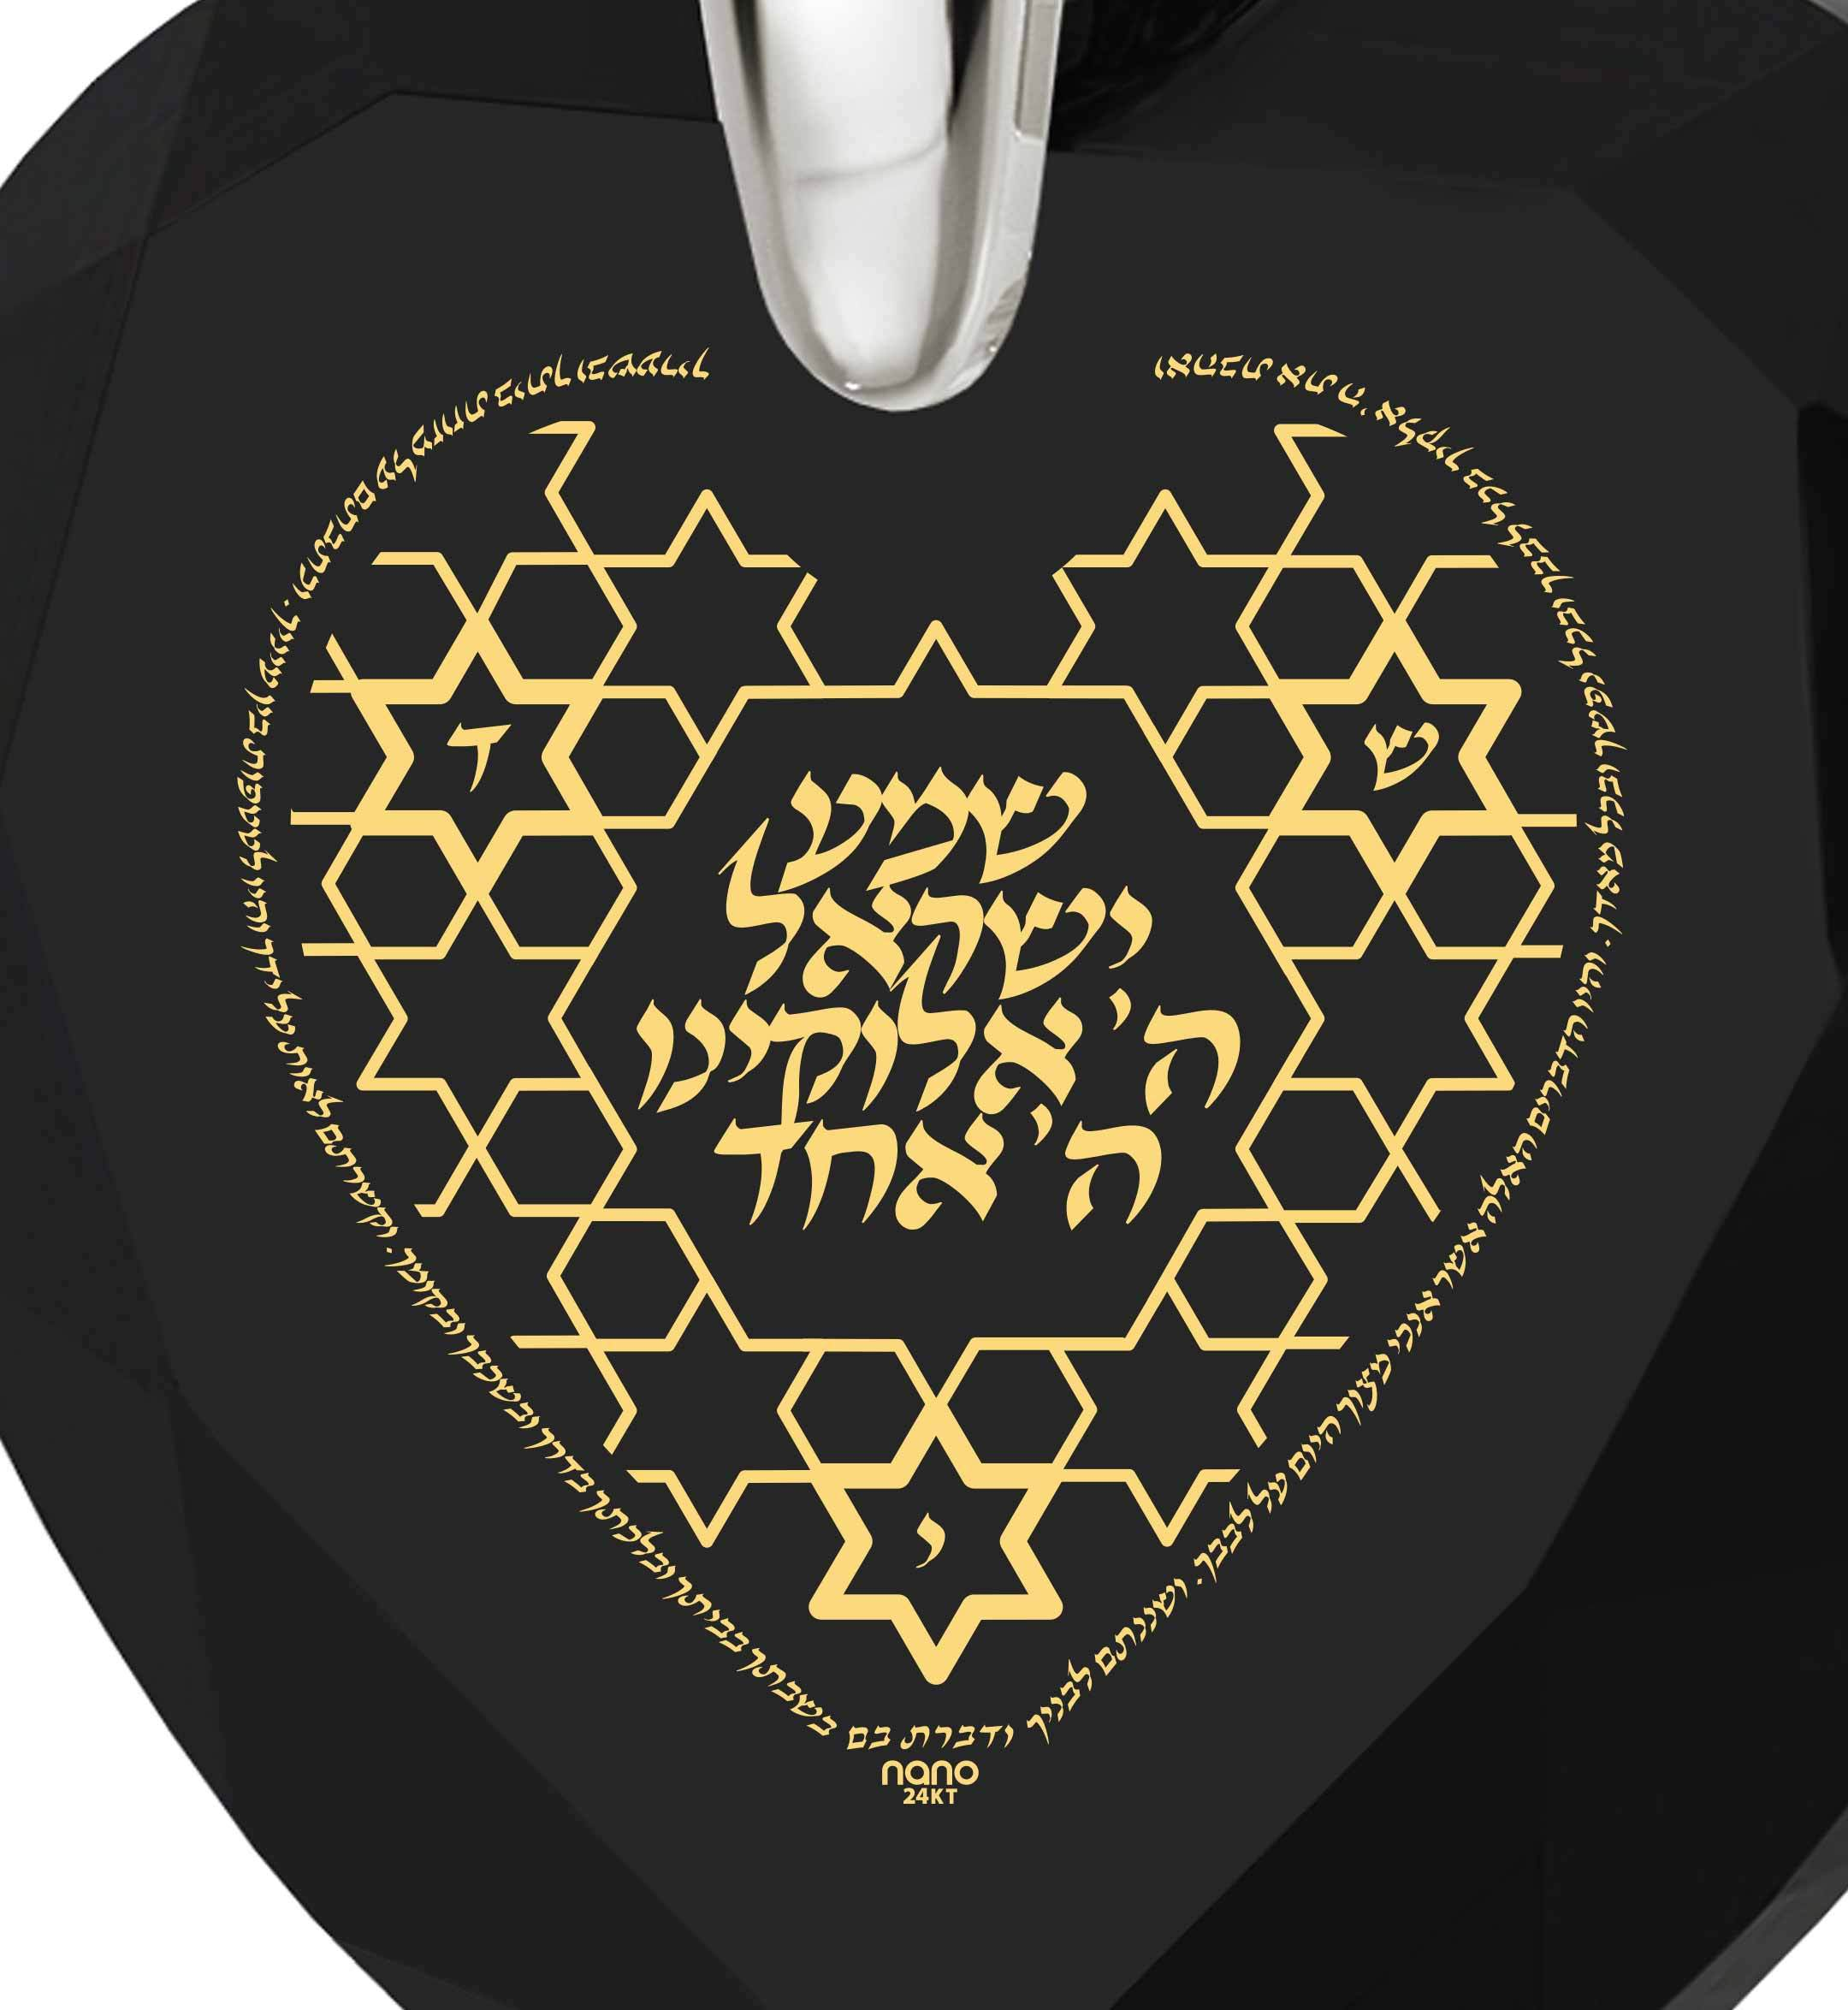 """Shema Yisrael"" Engraved in 24k, Jewish Store with Black Onyx Jewelry, Jewelry from Israel"